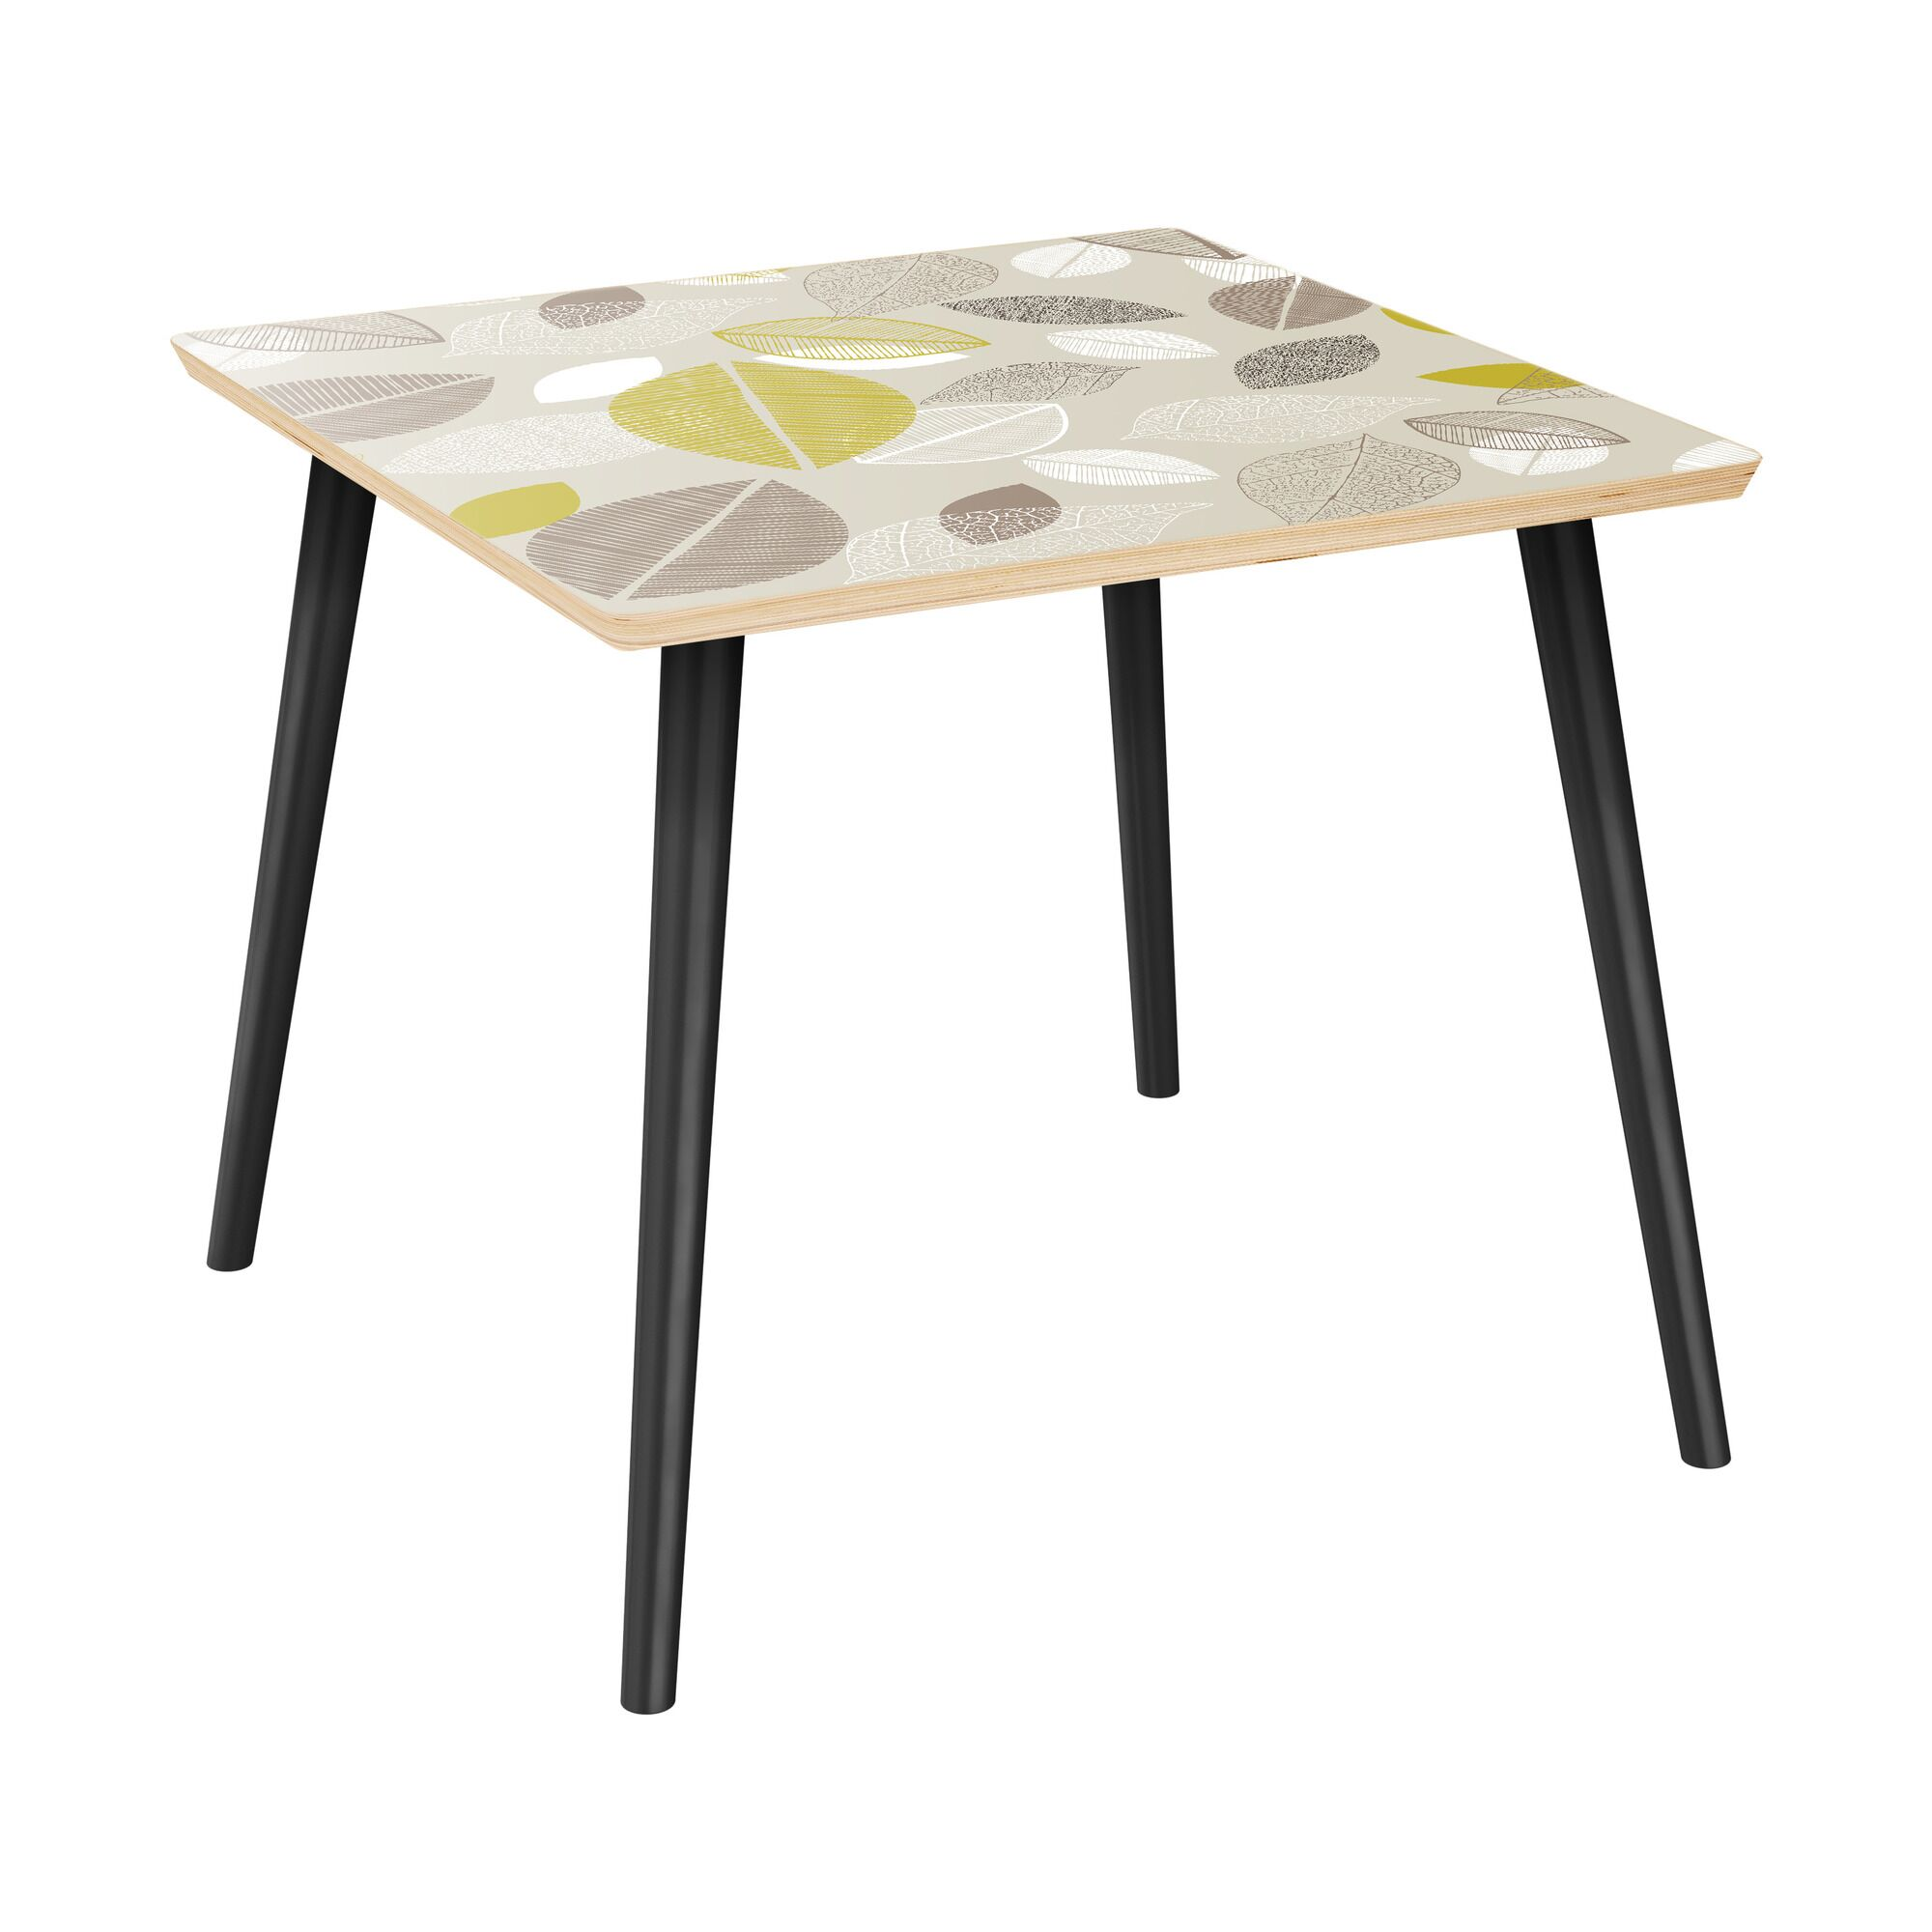 Scharff End Table Table Top Boarder Color: Natural, Table Base Color: Black, Table Top Color: Green/Brown